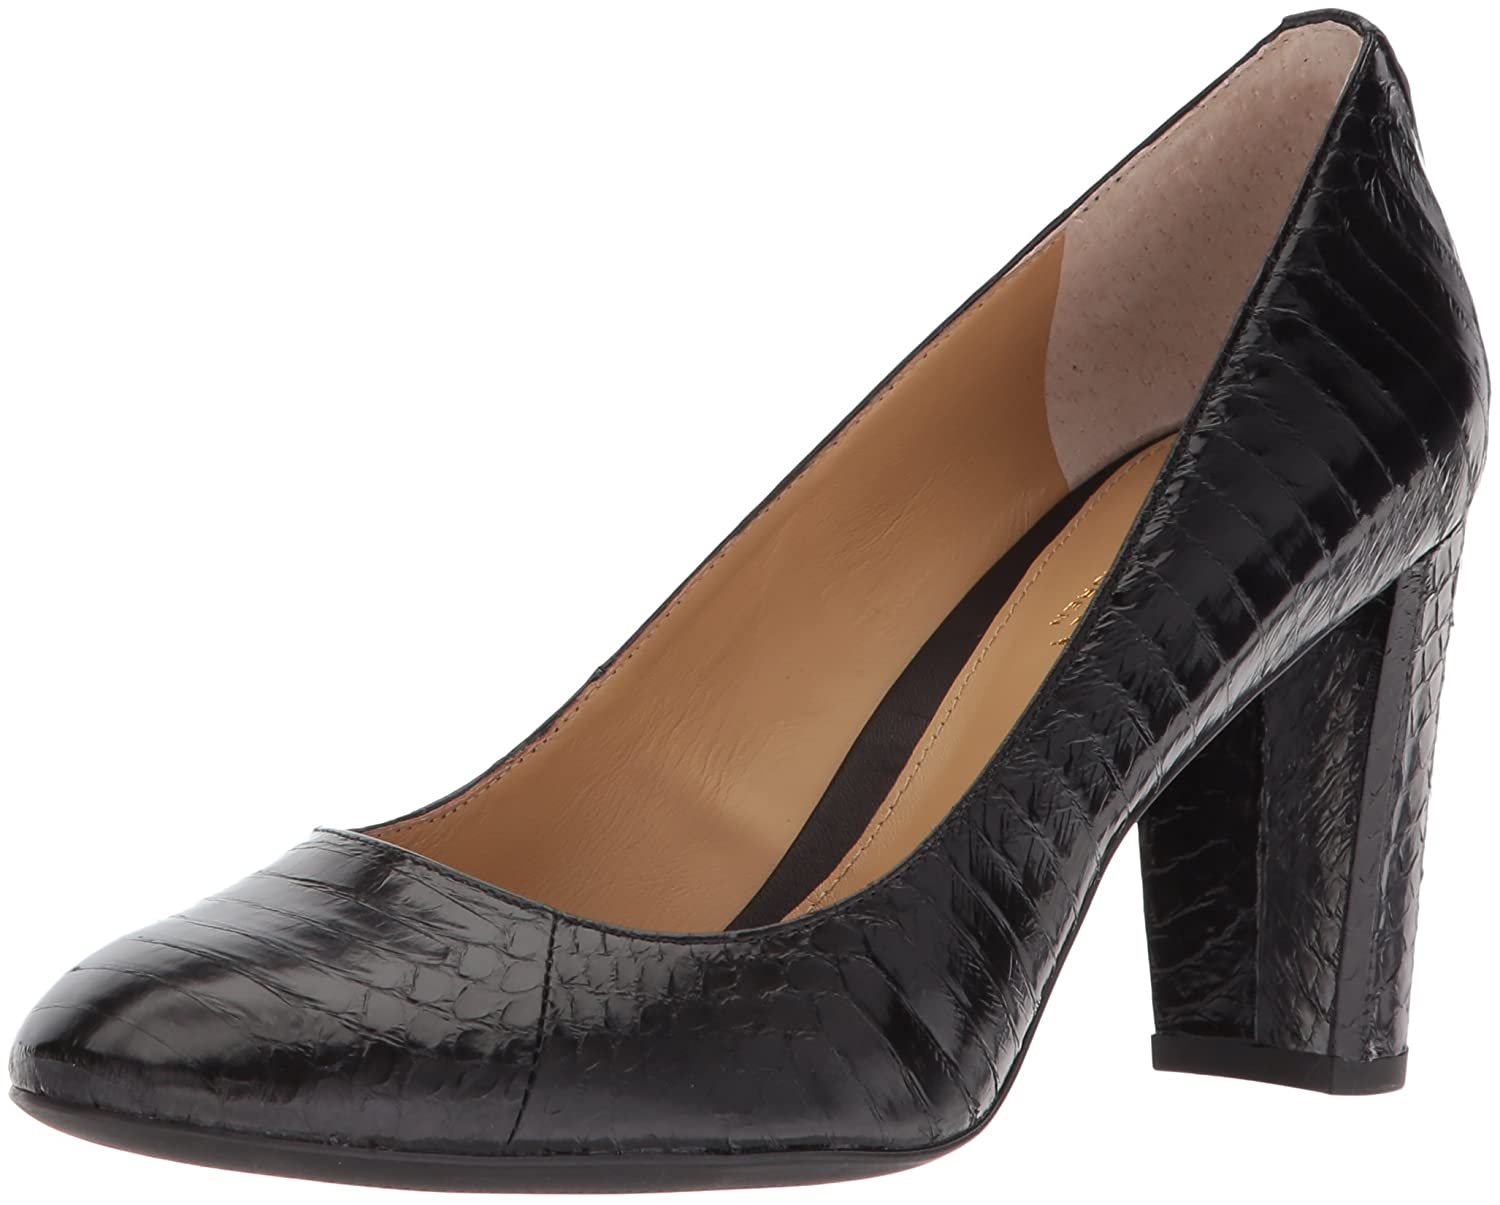 Lauren by Ralph Lauren Women's Maddie Pump B076D3QR8M 7 B(M) US|Black-1